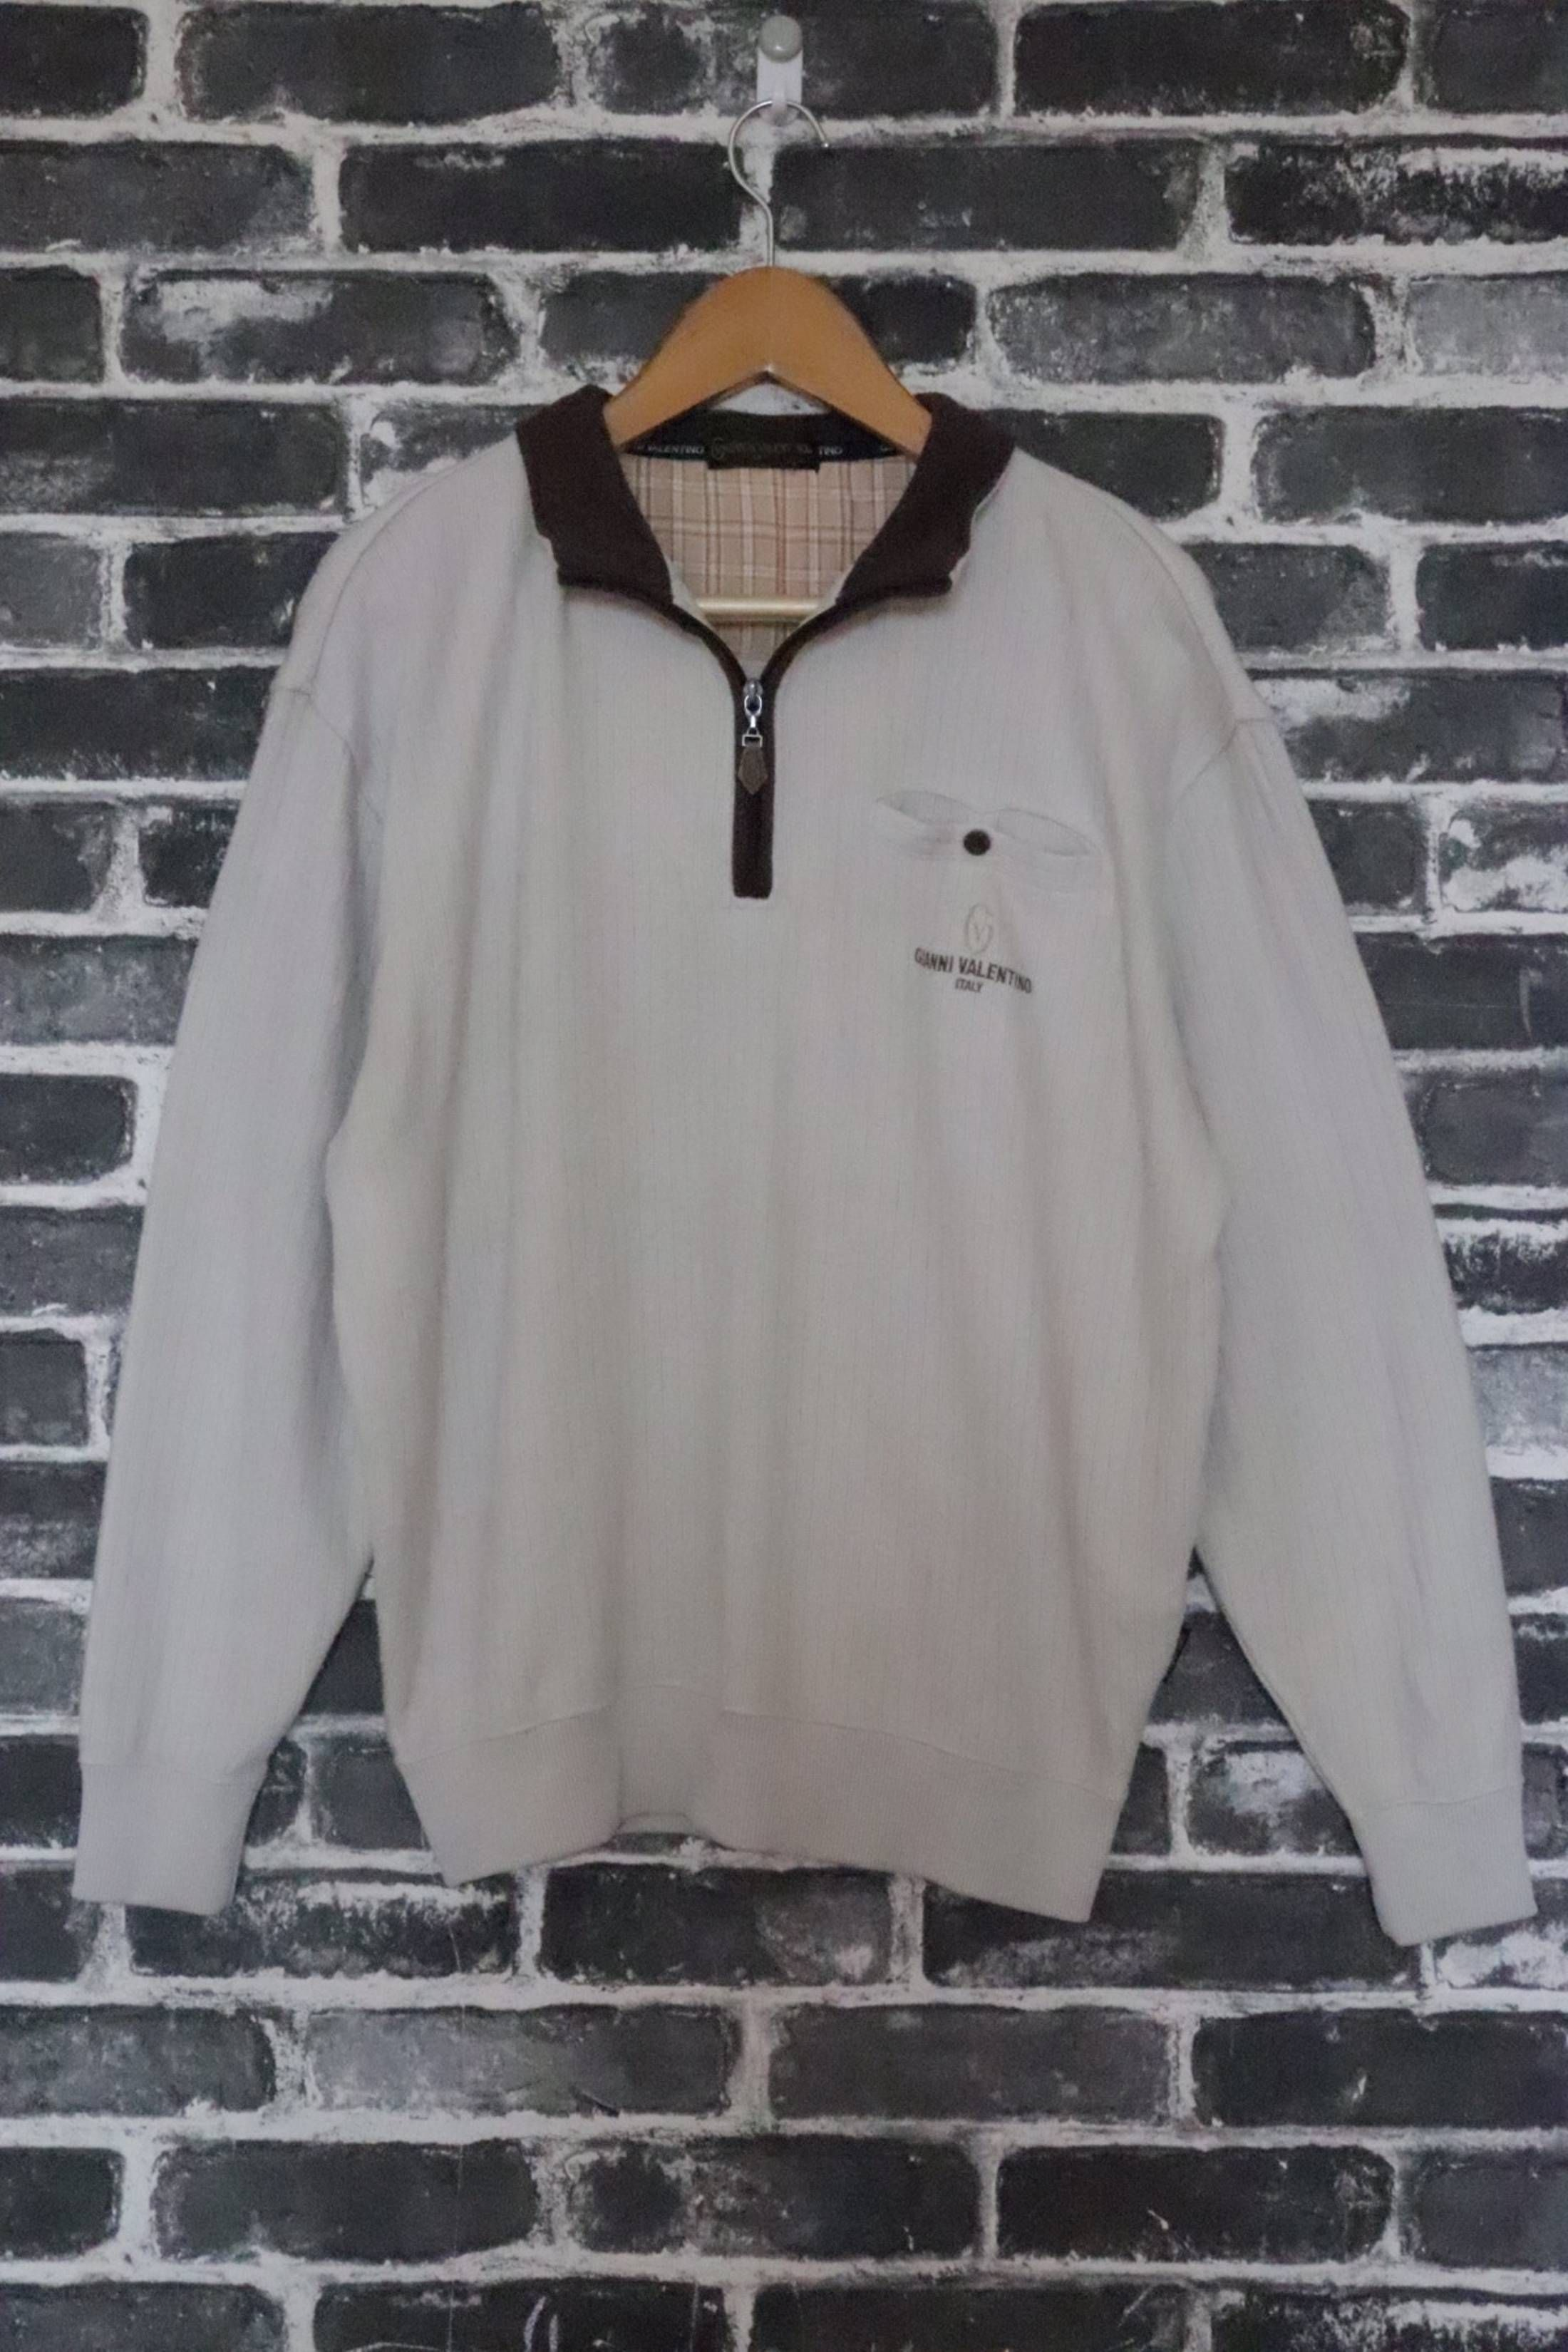 5bf9546c705ed ... GIANNI VALENTINO italy Pull over jumper Men fashion wear Casual wear  not Burberrys Chanel versace Street wear/golf/street Size US L / EU 52-54 /  3